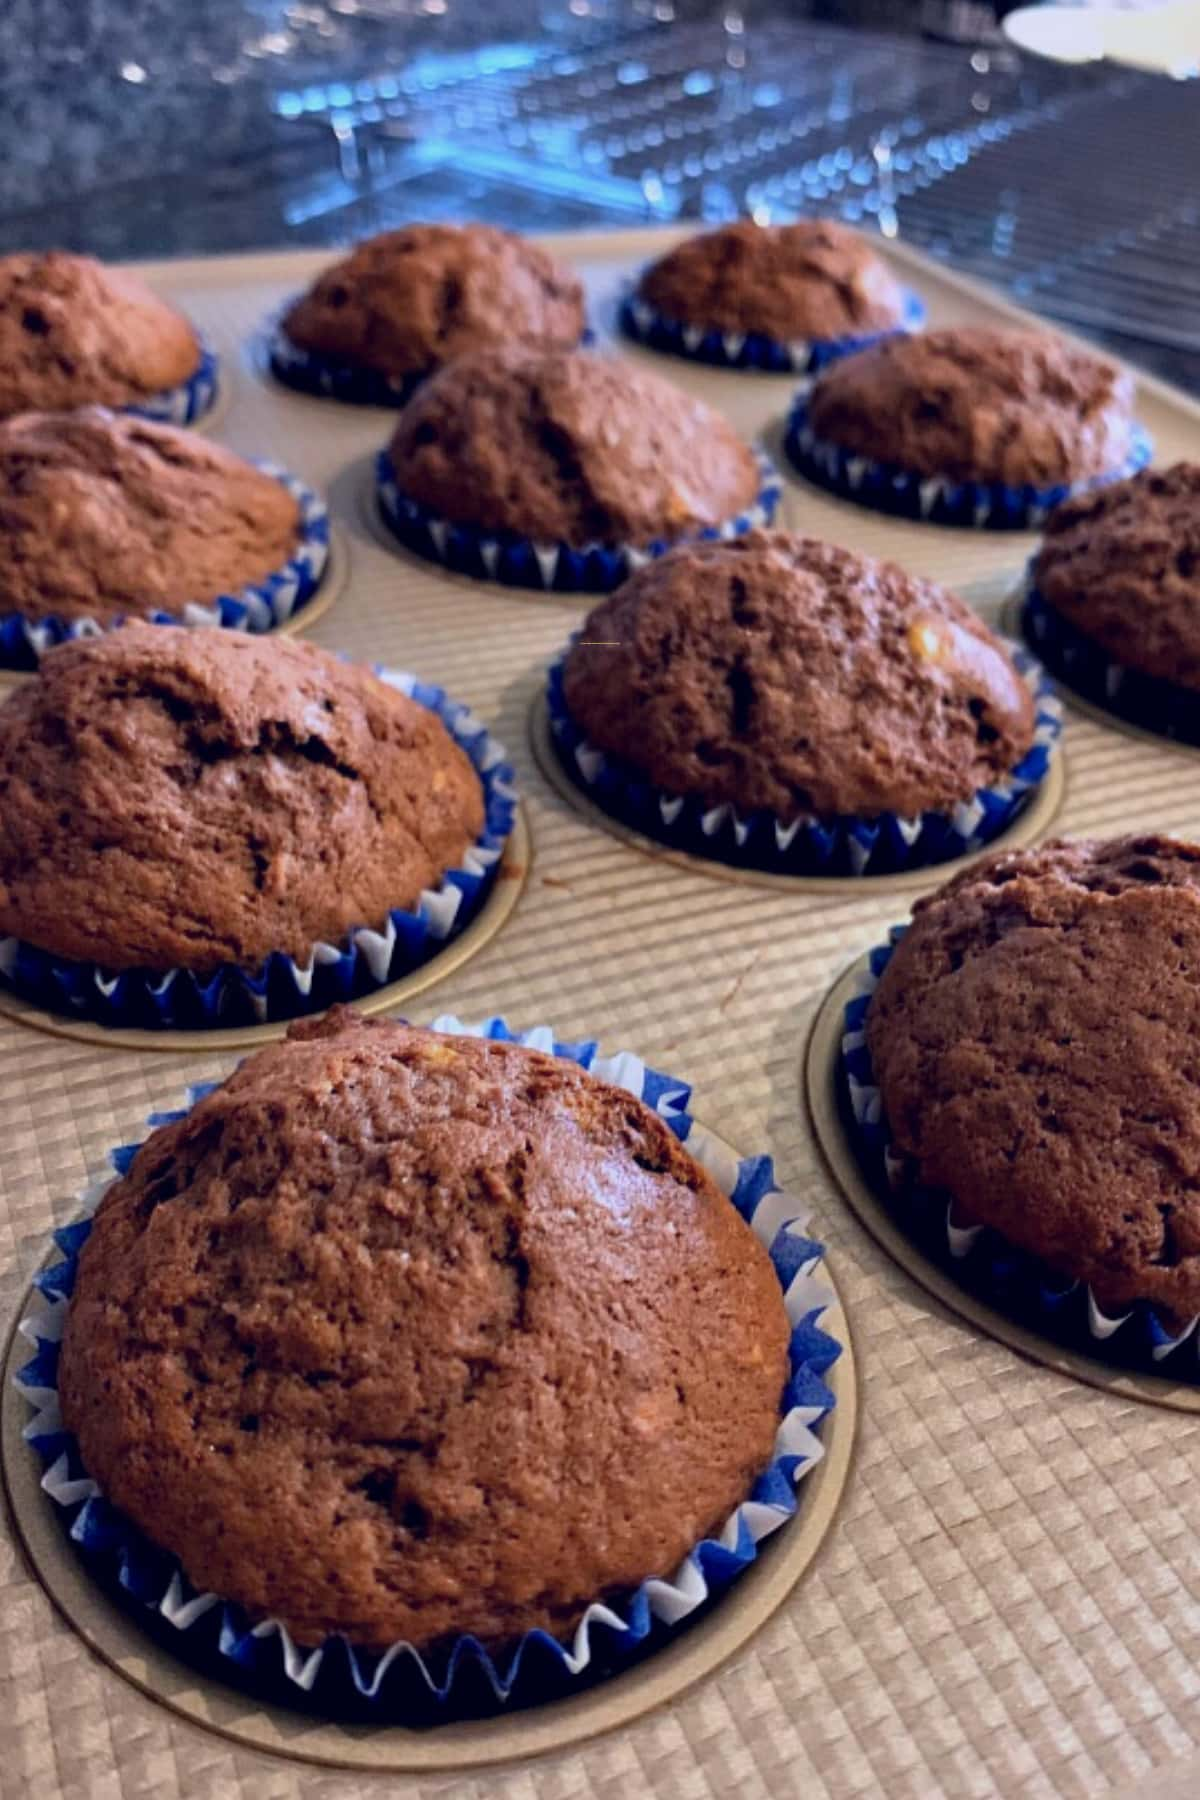 How To Make A Basic Chocolate Loaf Cake, muffins